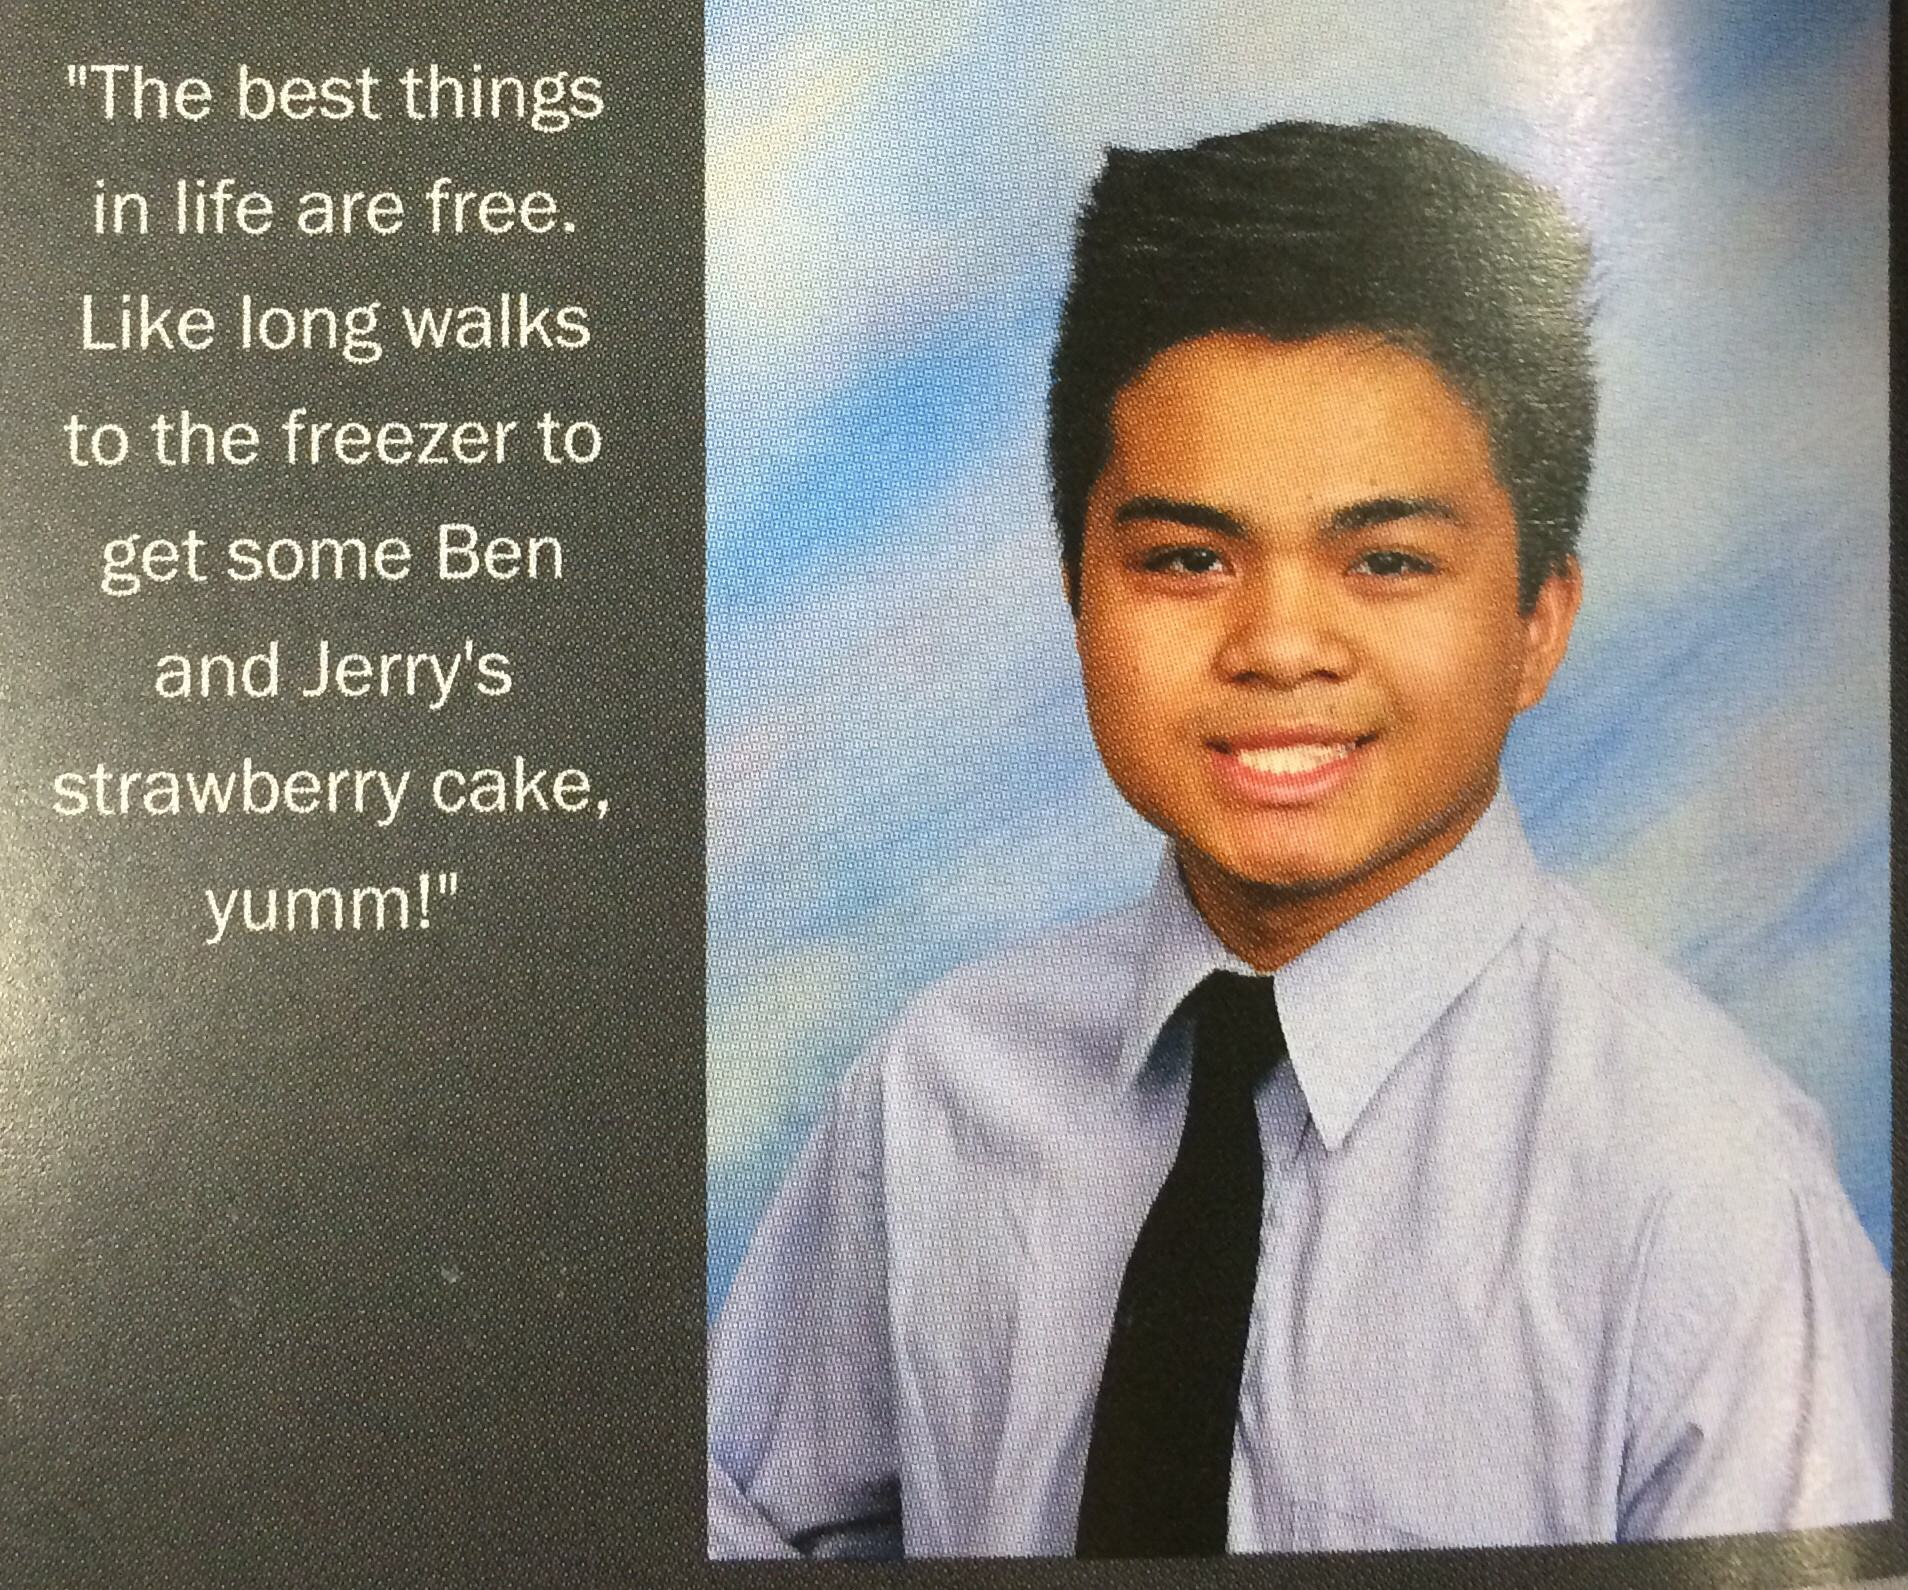 Senior Yearbook Quotes Good Senior Quotes Brilliant 32 Hilarious Yearbook Senior Quotes